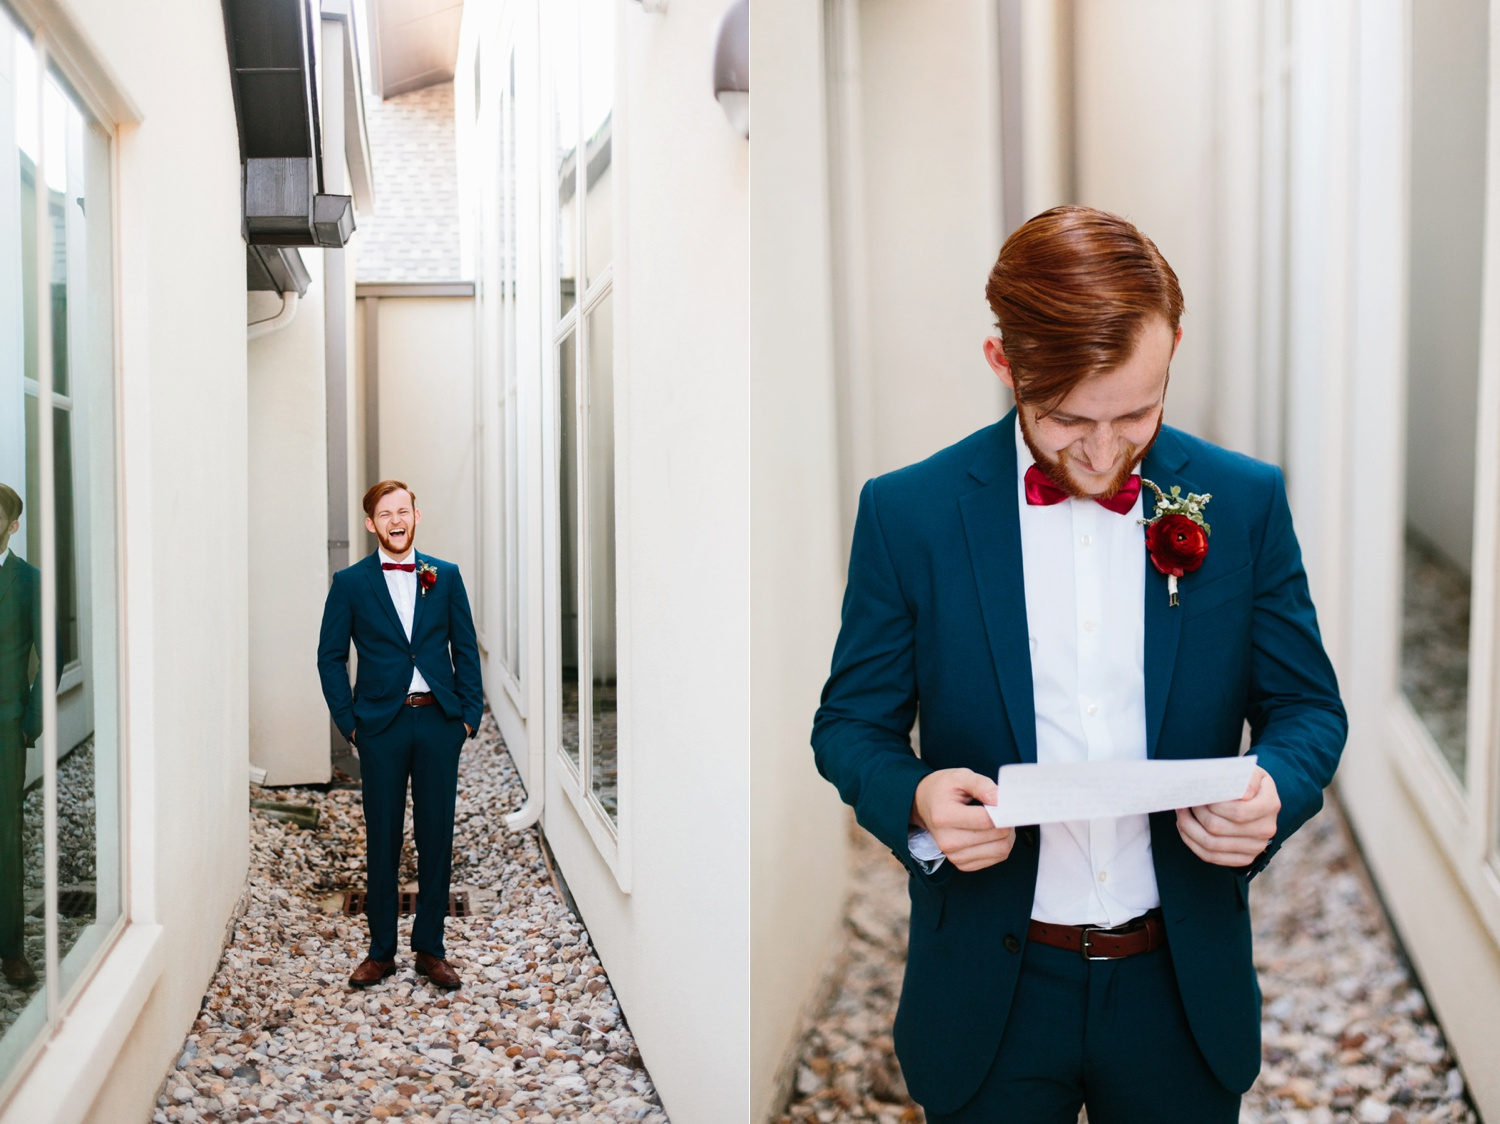 Grant + Lysette | a vibrant, deep burgundy and navy, and mixed metals wedding at Hidden Pines Chapel by North Texas Wedding Photographer Rachel Meagan Photography 034